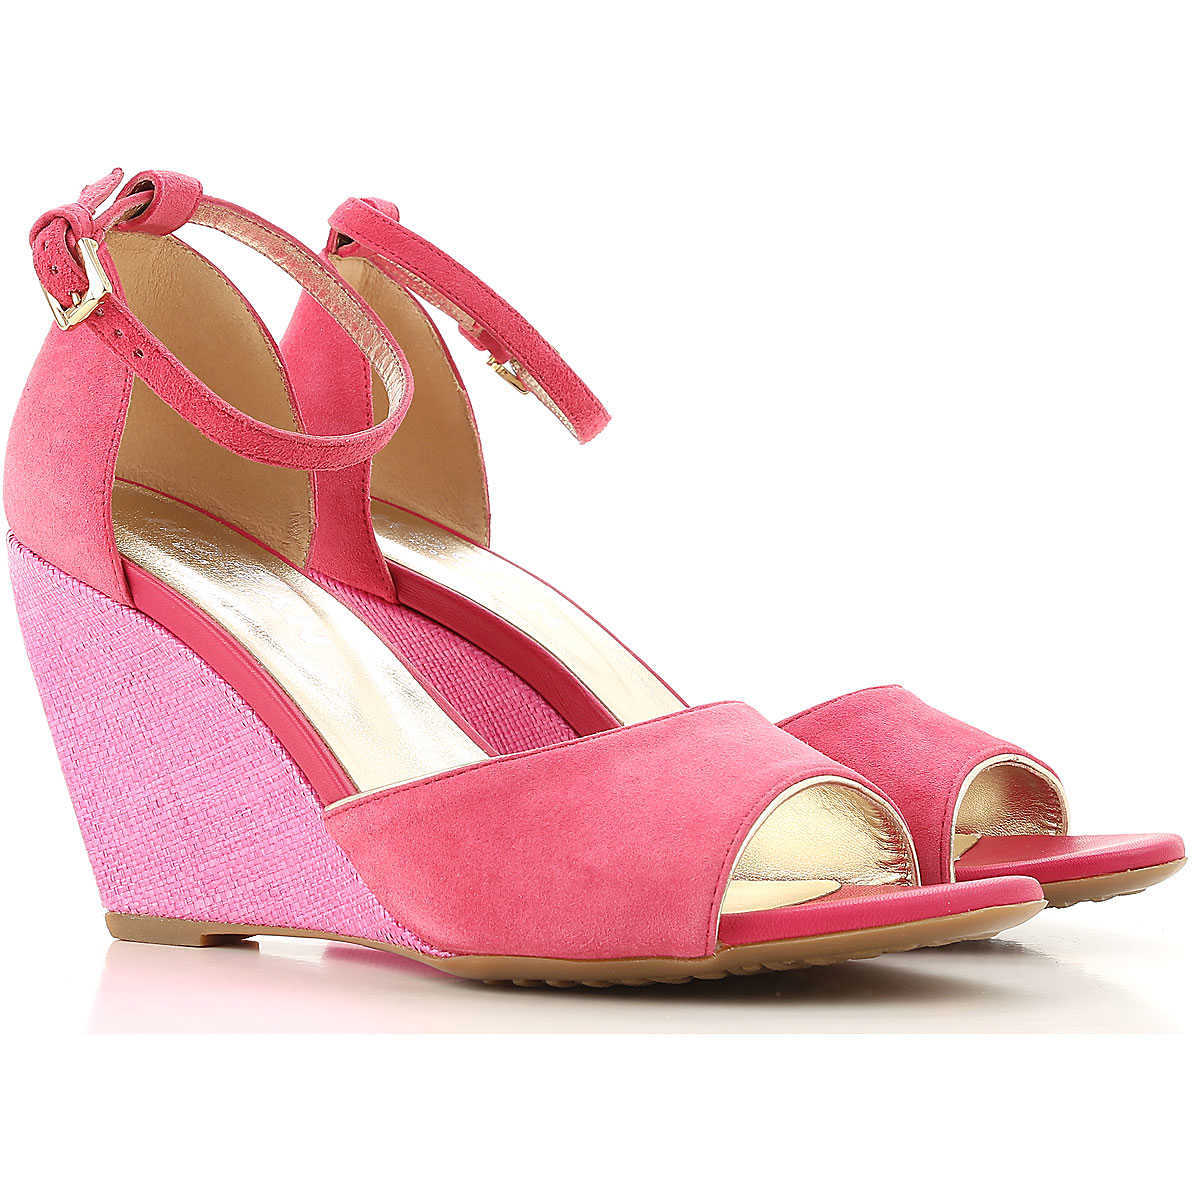 Hogan Wedges for Women On Sale in Outlet Carmine - GOOFASH